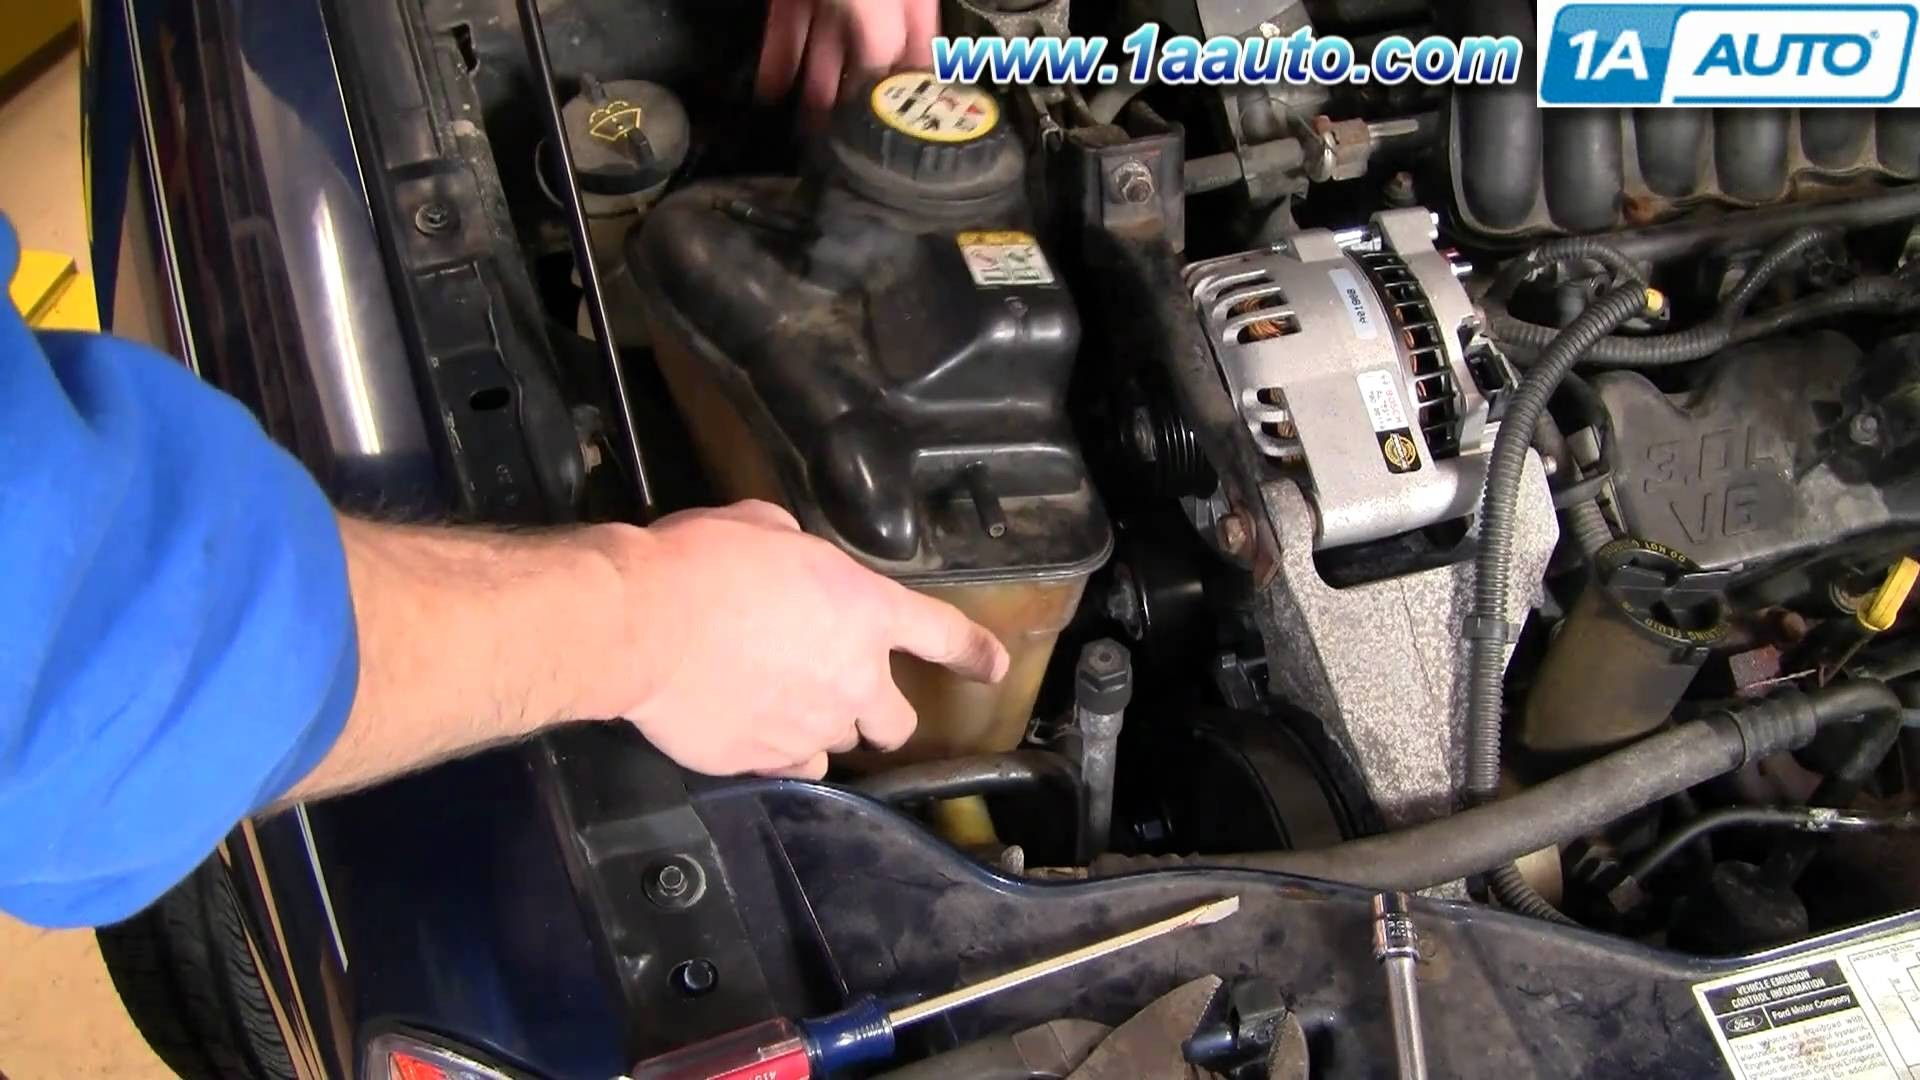 How To Install Replace Alternator Ford Taurus V63 0L 00 07 1AAuto